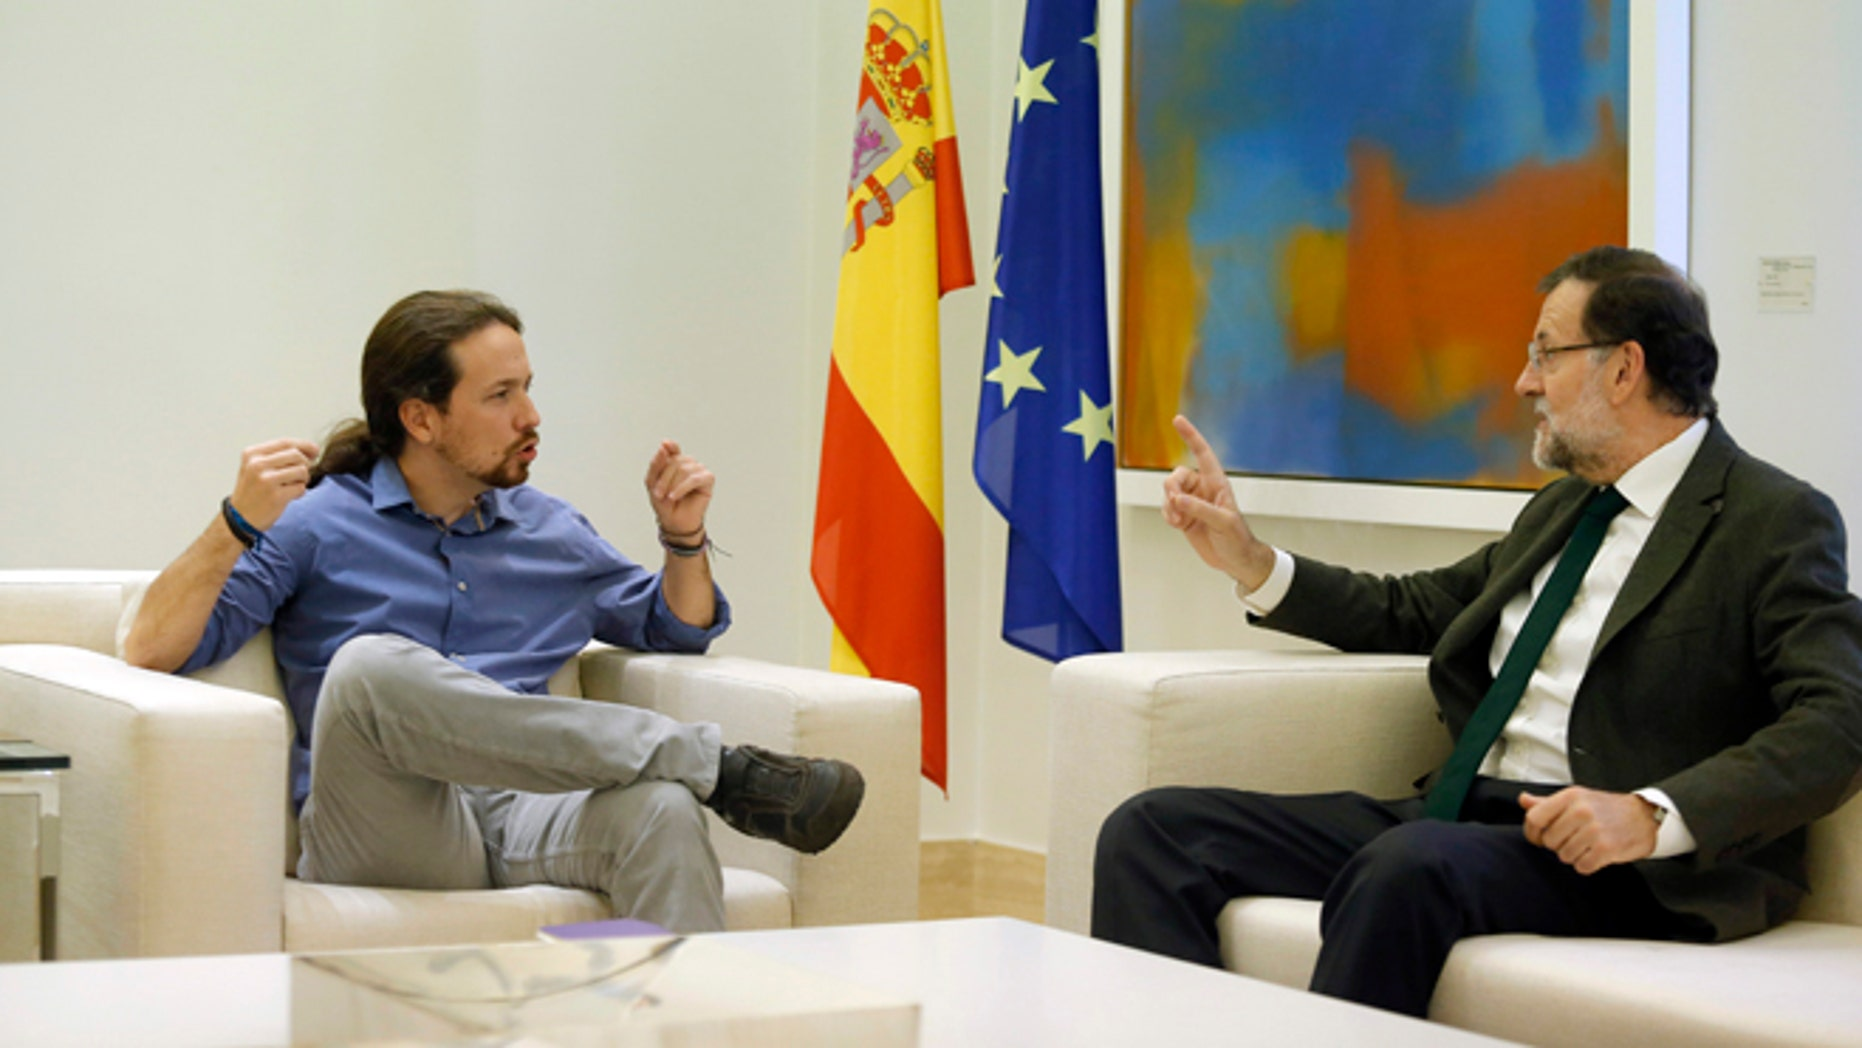 FILE - In this Oct. 30, 2015 file photo, Spain's Prime Minister Mariano Rajoy, right, talks to Podemos party leader Pablo Iglesias during their meeting at the Moncloa palace, the Spanish premier's official residence, in Madrid. Rajoy is meeting with the leaders of two upstart parties on Monday Dec. 28, 2015 following an election that gave Rajoys party the most votes but left it far short of a parliamentary majority. Rajoy is seeking support for his center-right Popular Party to govern as a minority party or in a coalition but his options are limited. (AP Photo/Francisco Seco, File)